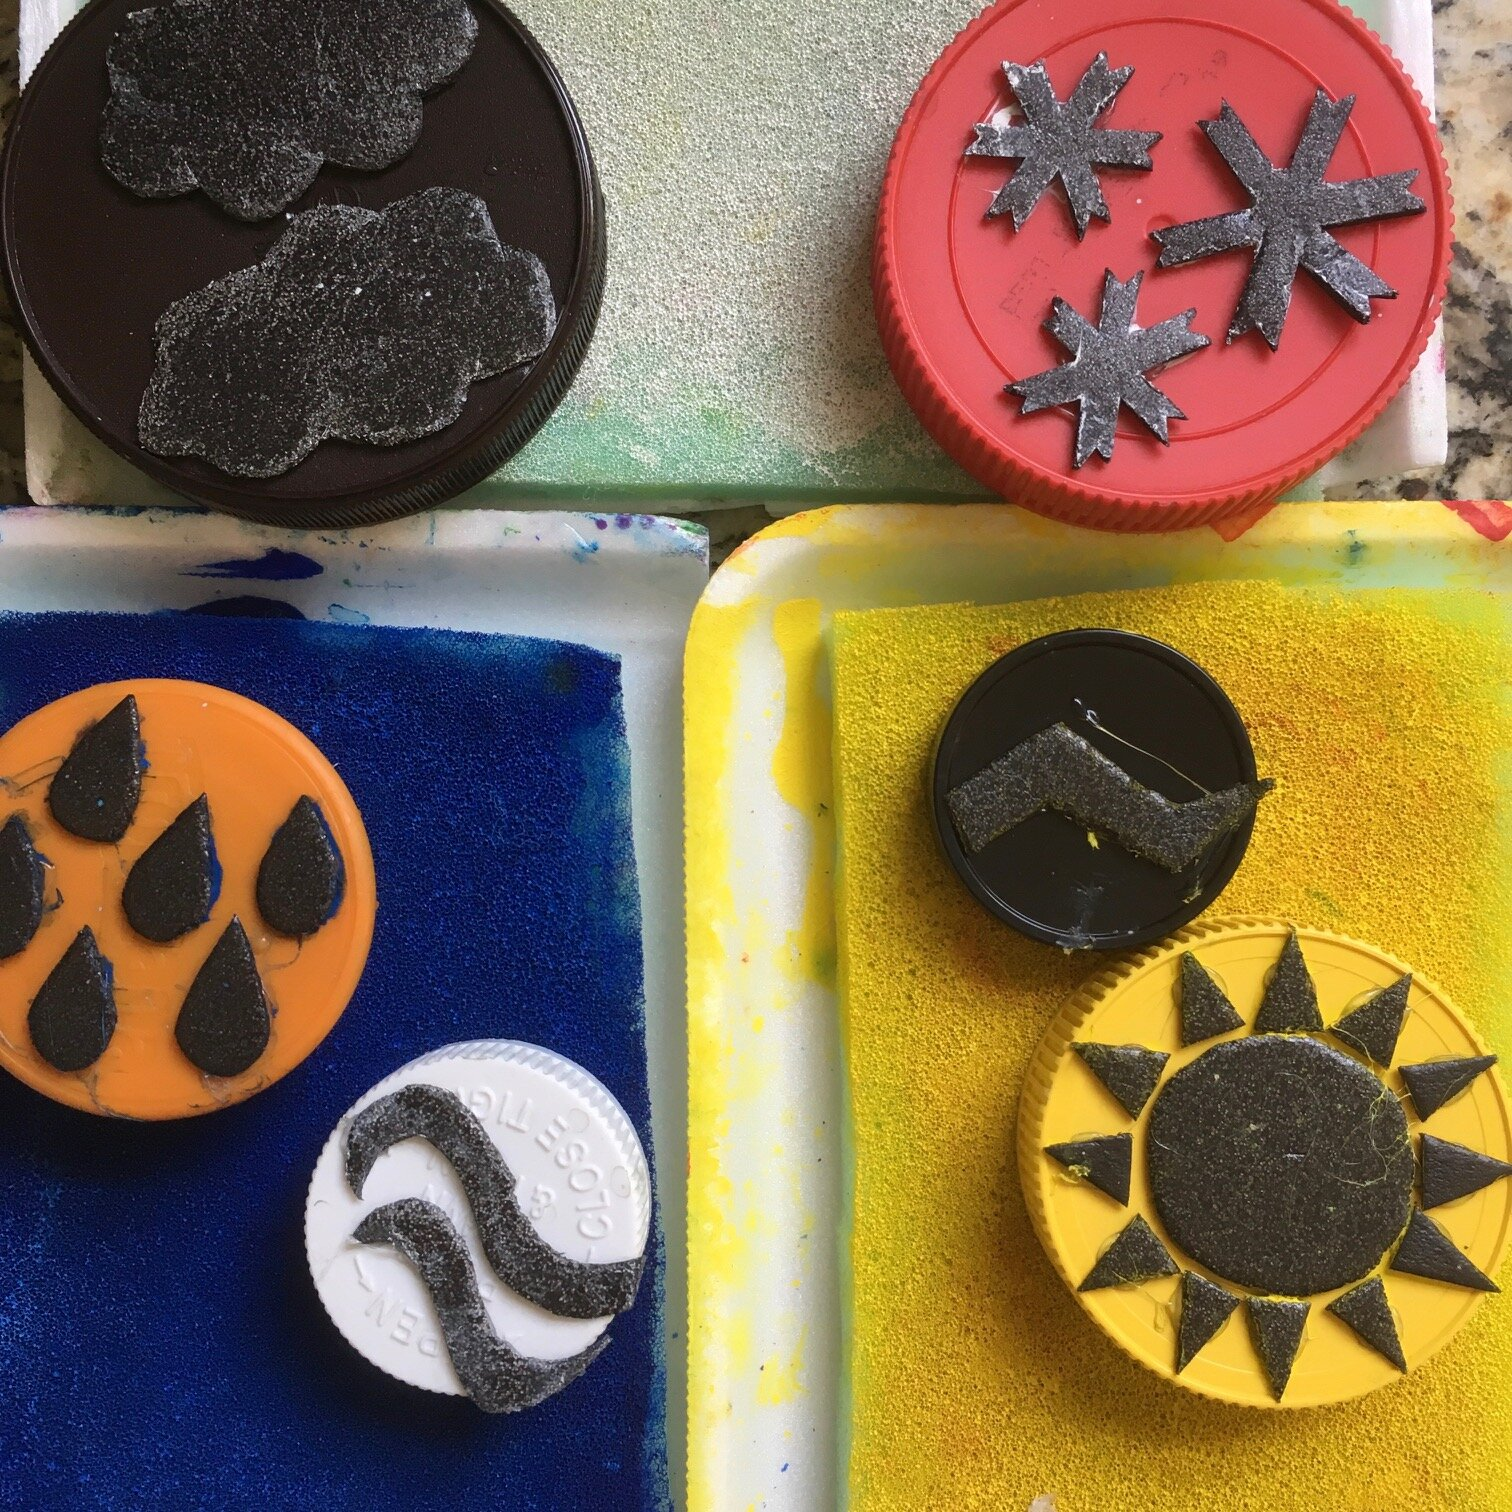 DIY Stamp Pads and Stamps -